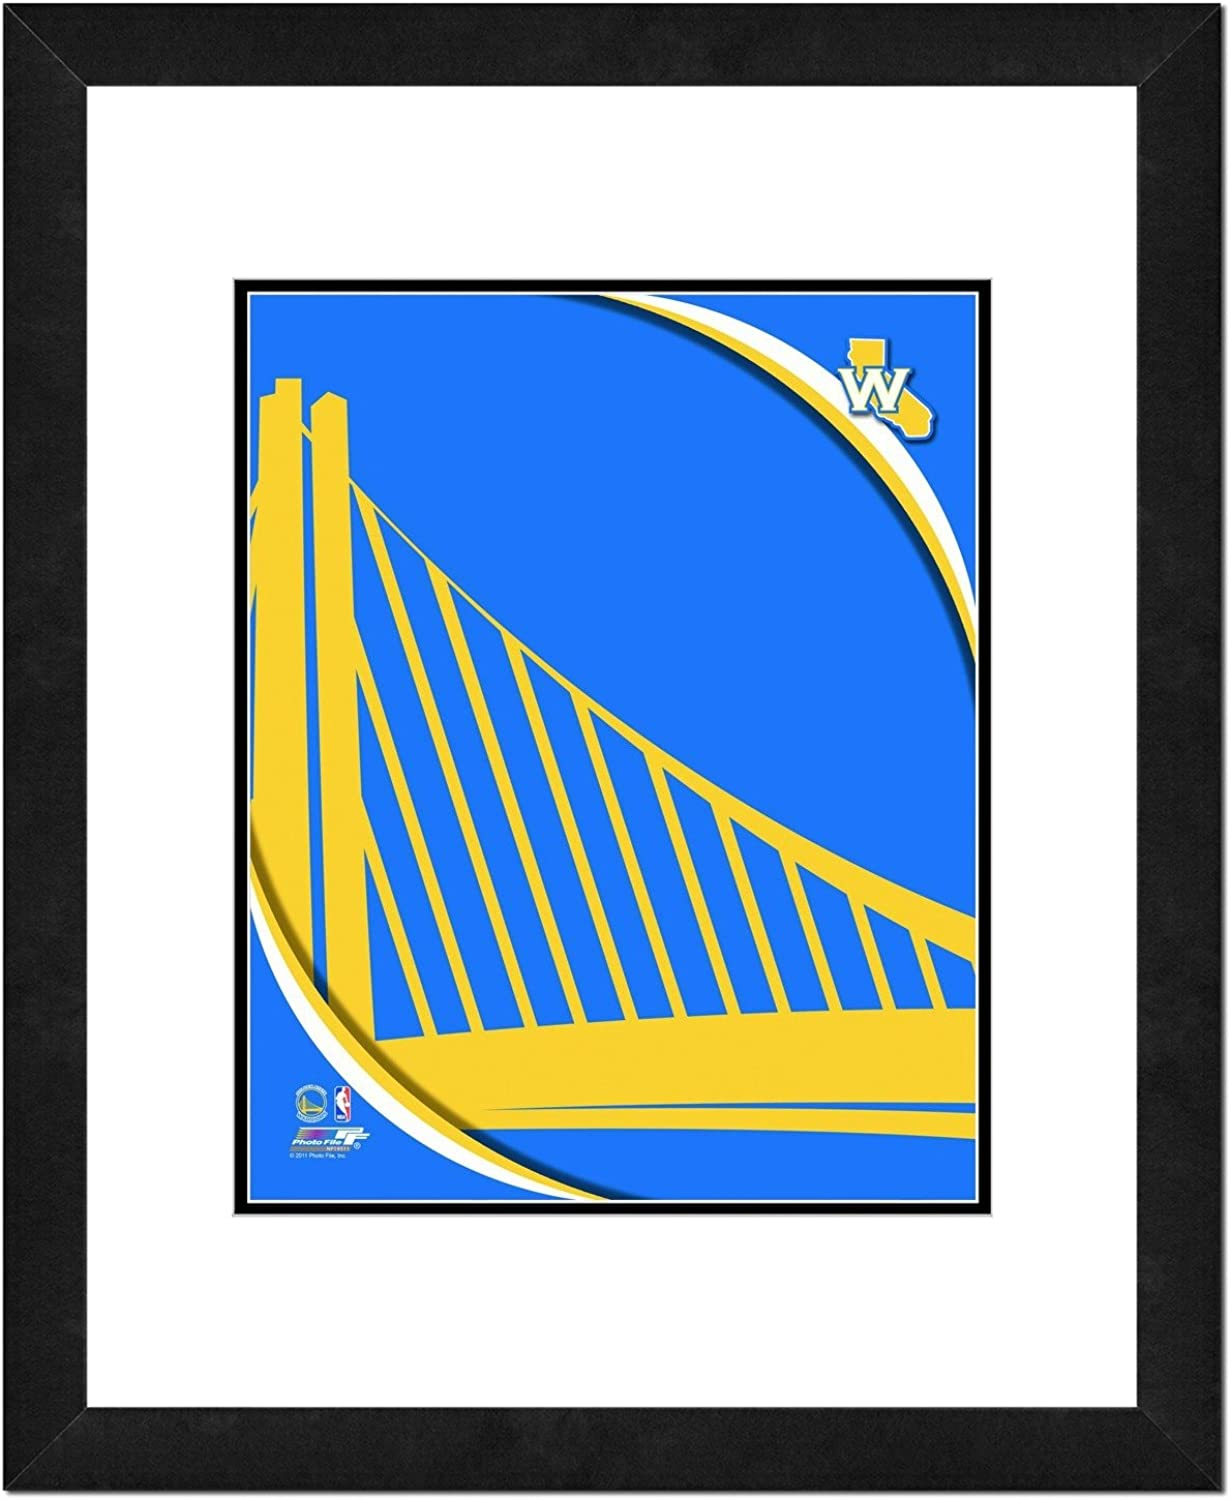 NBA Team Logo Large-scale sale Max 75% OFF Double Framed Matted Photo